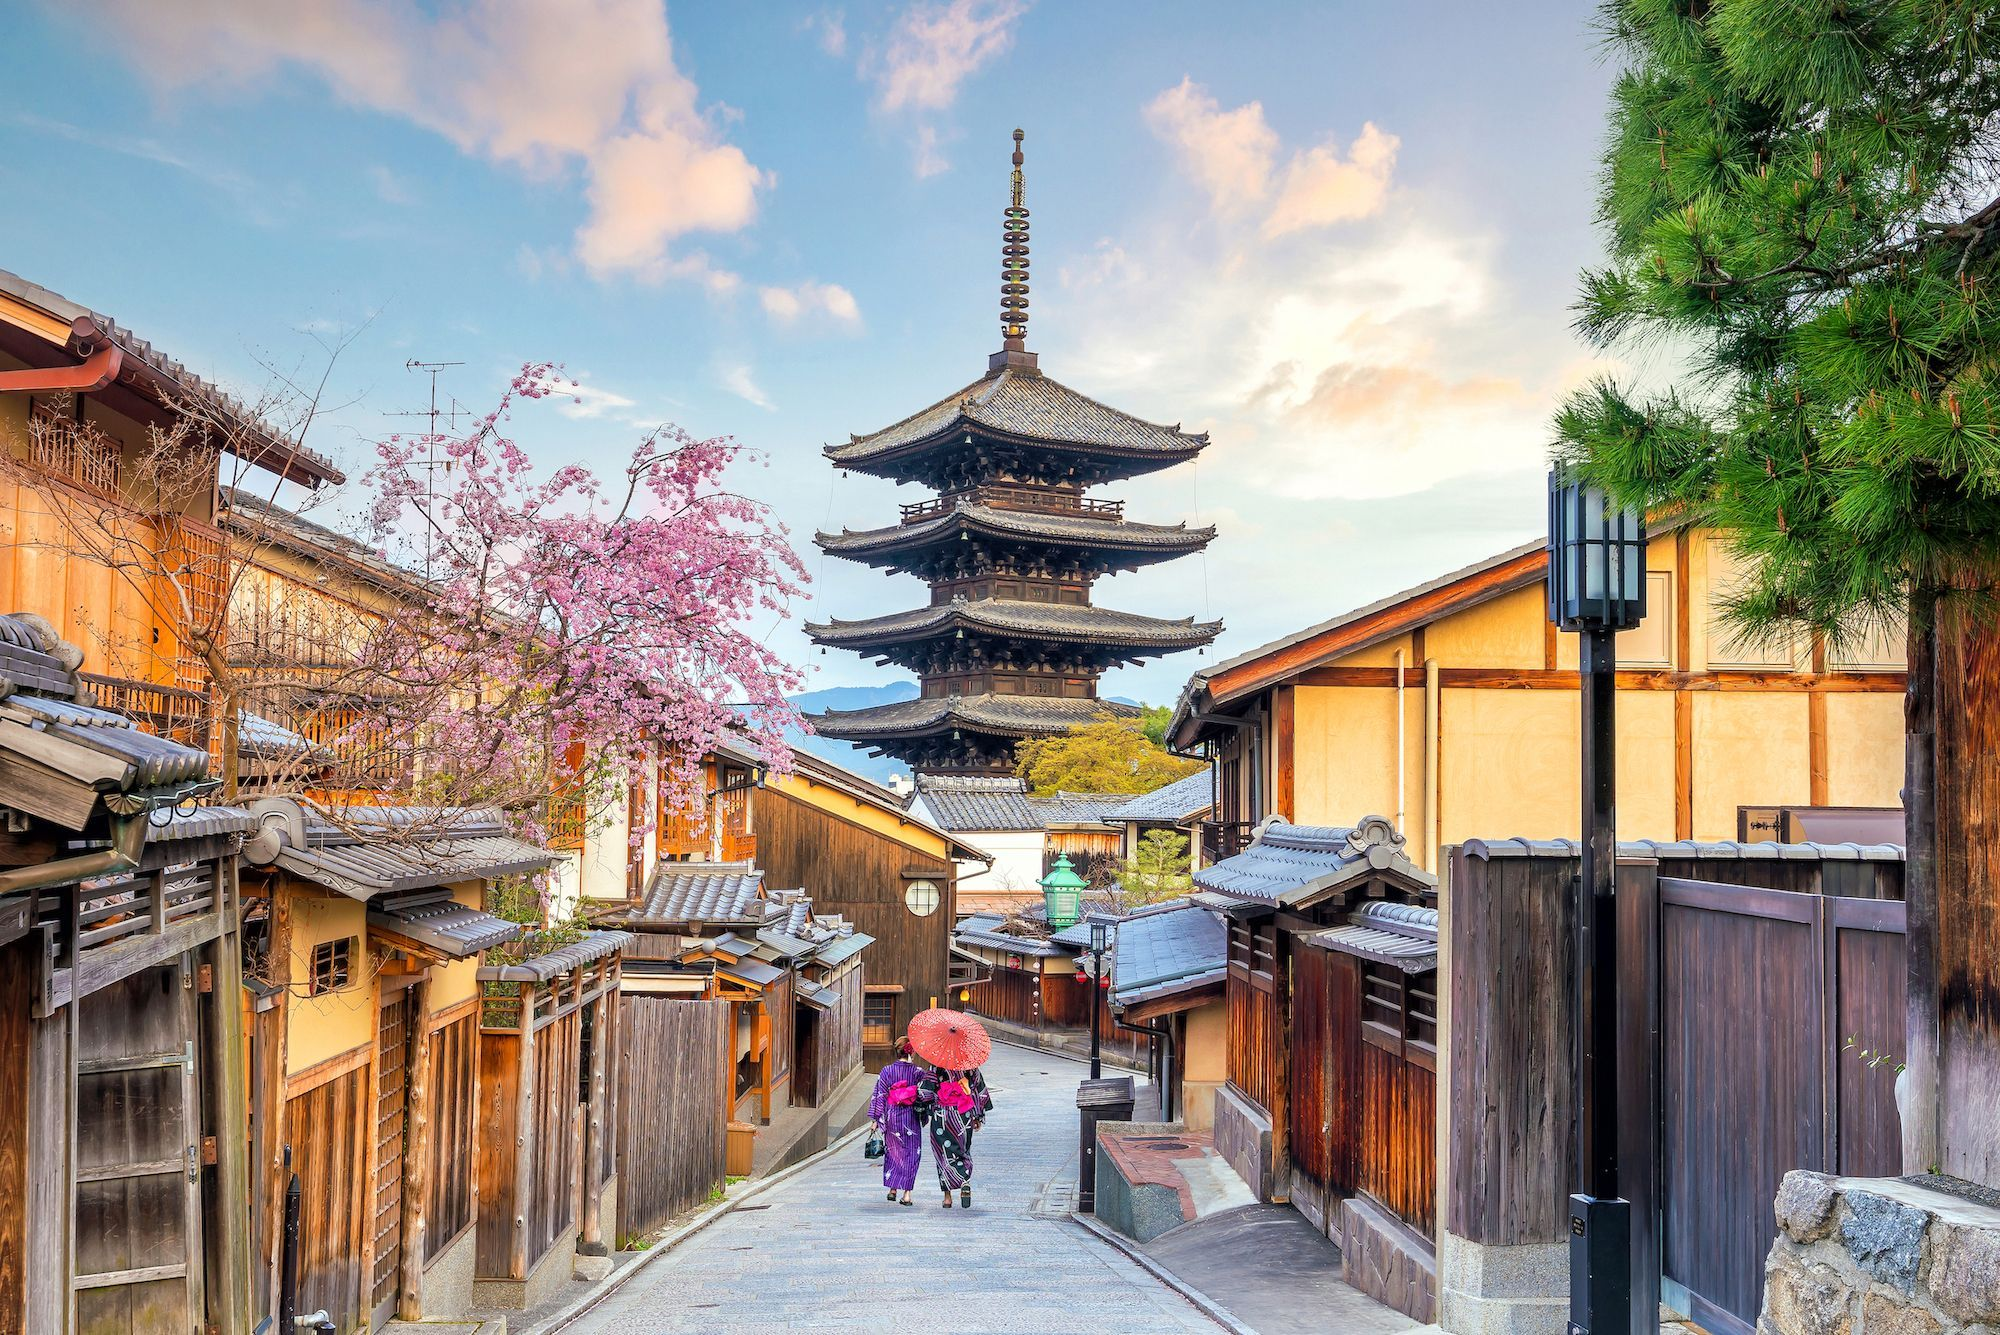 30 Best Things to do in Kyoto